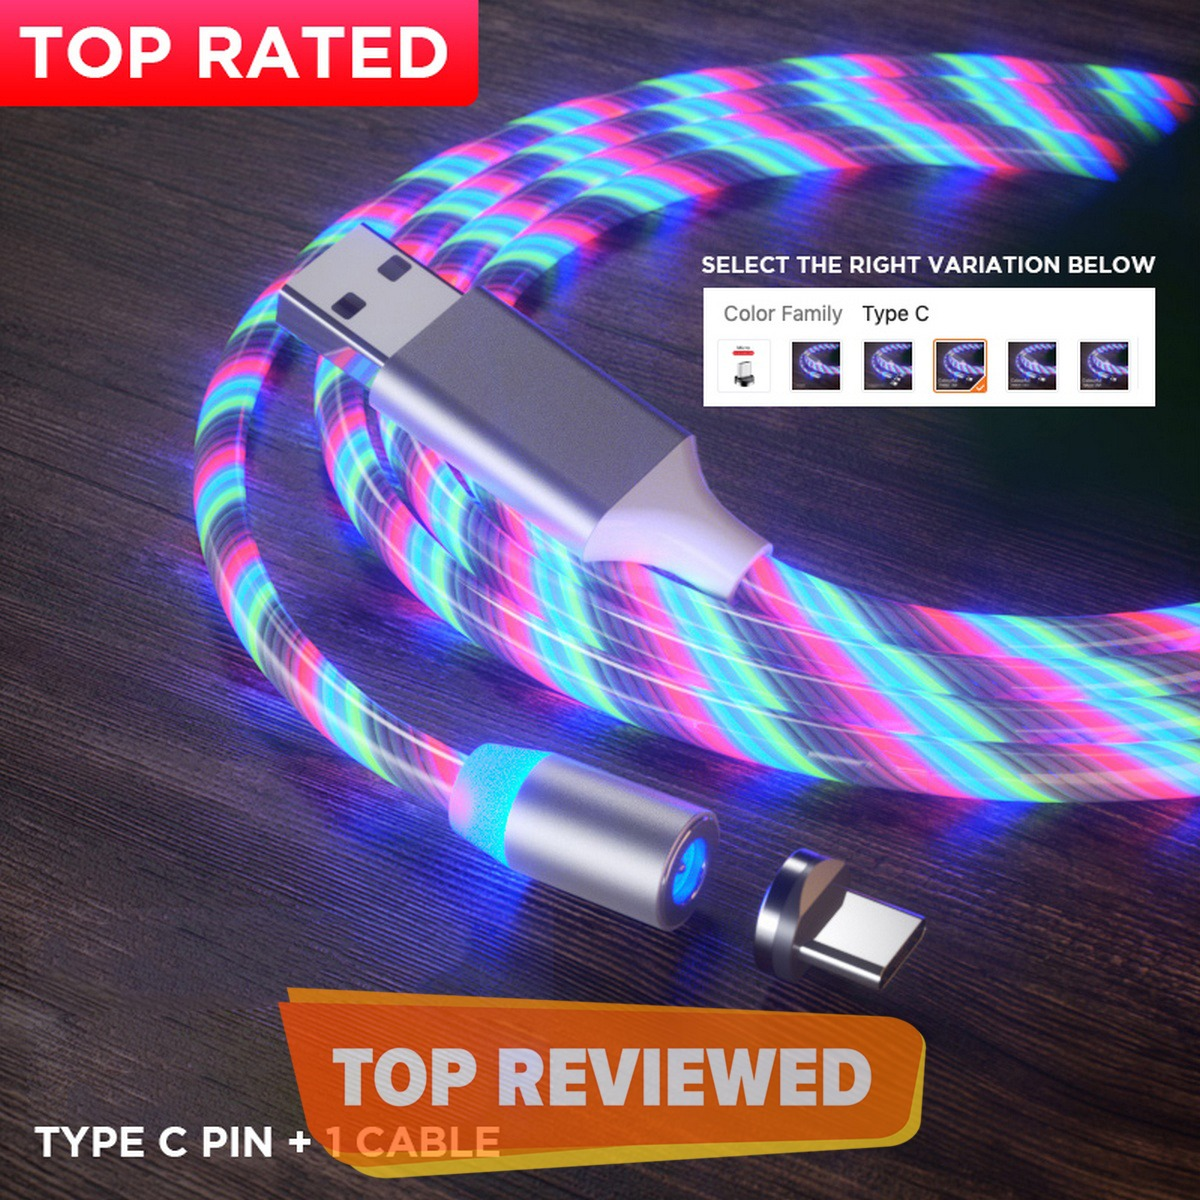 Magnet Charger Cable Flowing Led Light with Magnetic Charging Pin Micro USB / Type C / IPhone Connectors